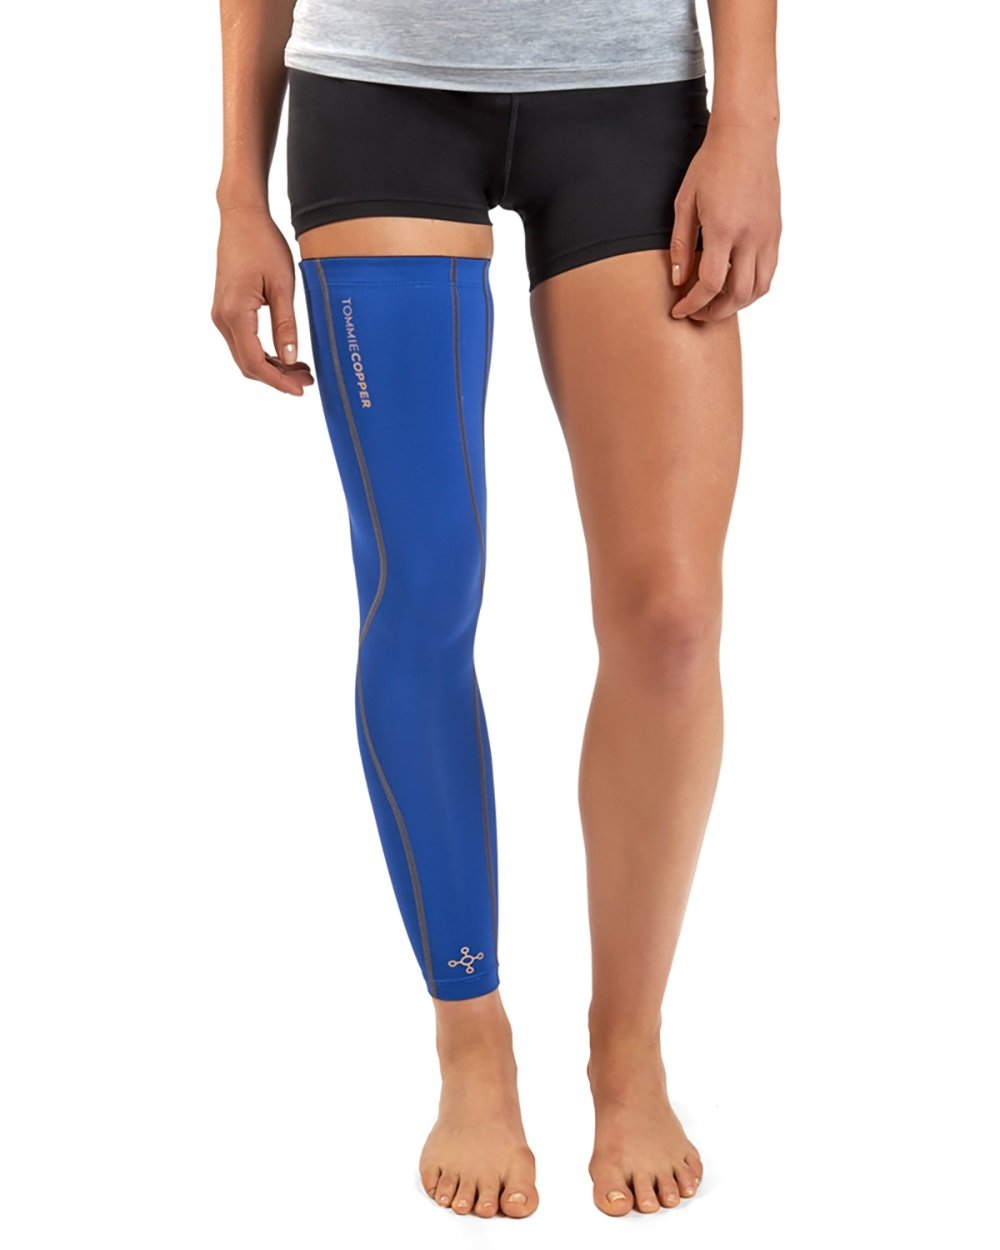 Tommie Copper Women's Performance Full Leg Sleeves 2.0, X-Large, Cobalt Blue